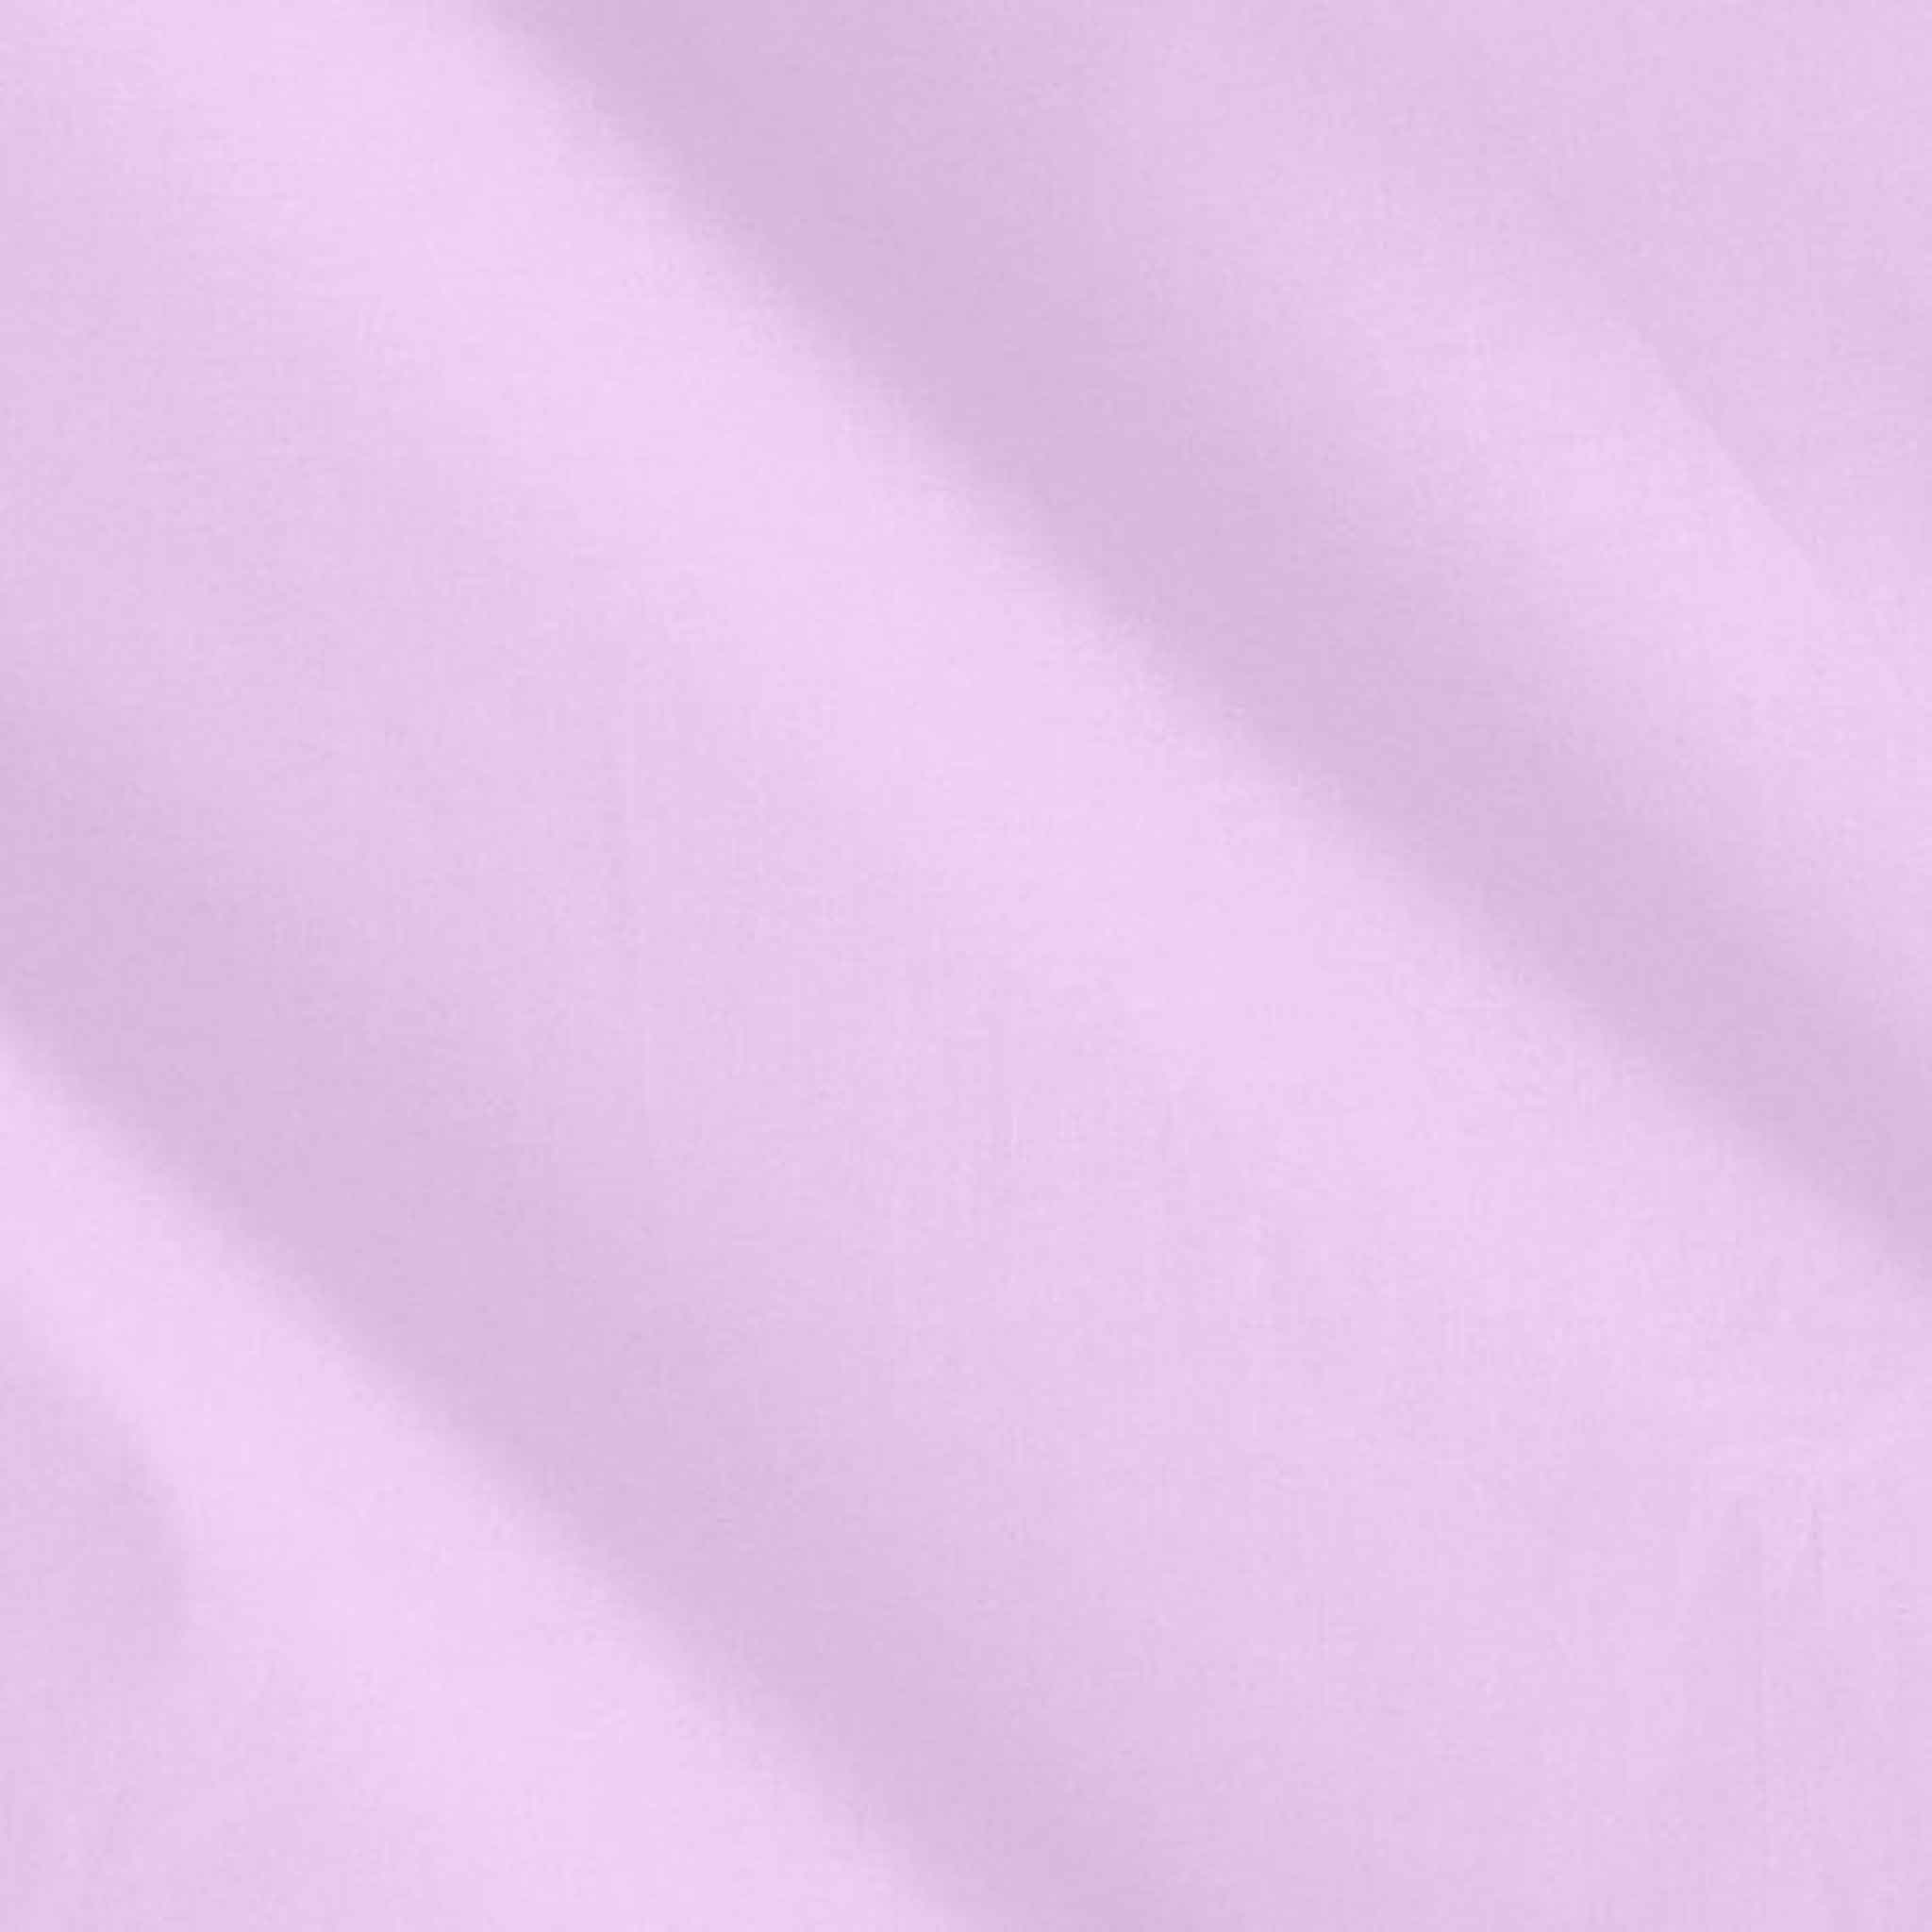 Lilac Cotton Fabric by Makower 2000/L55 from their Spectrum Basics Collection - Fabric and Ribbon